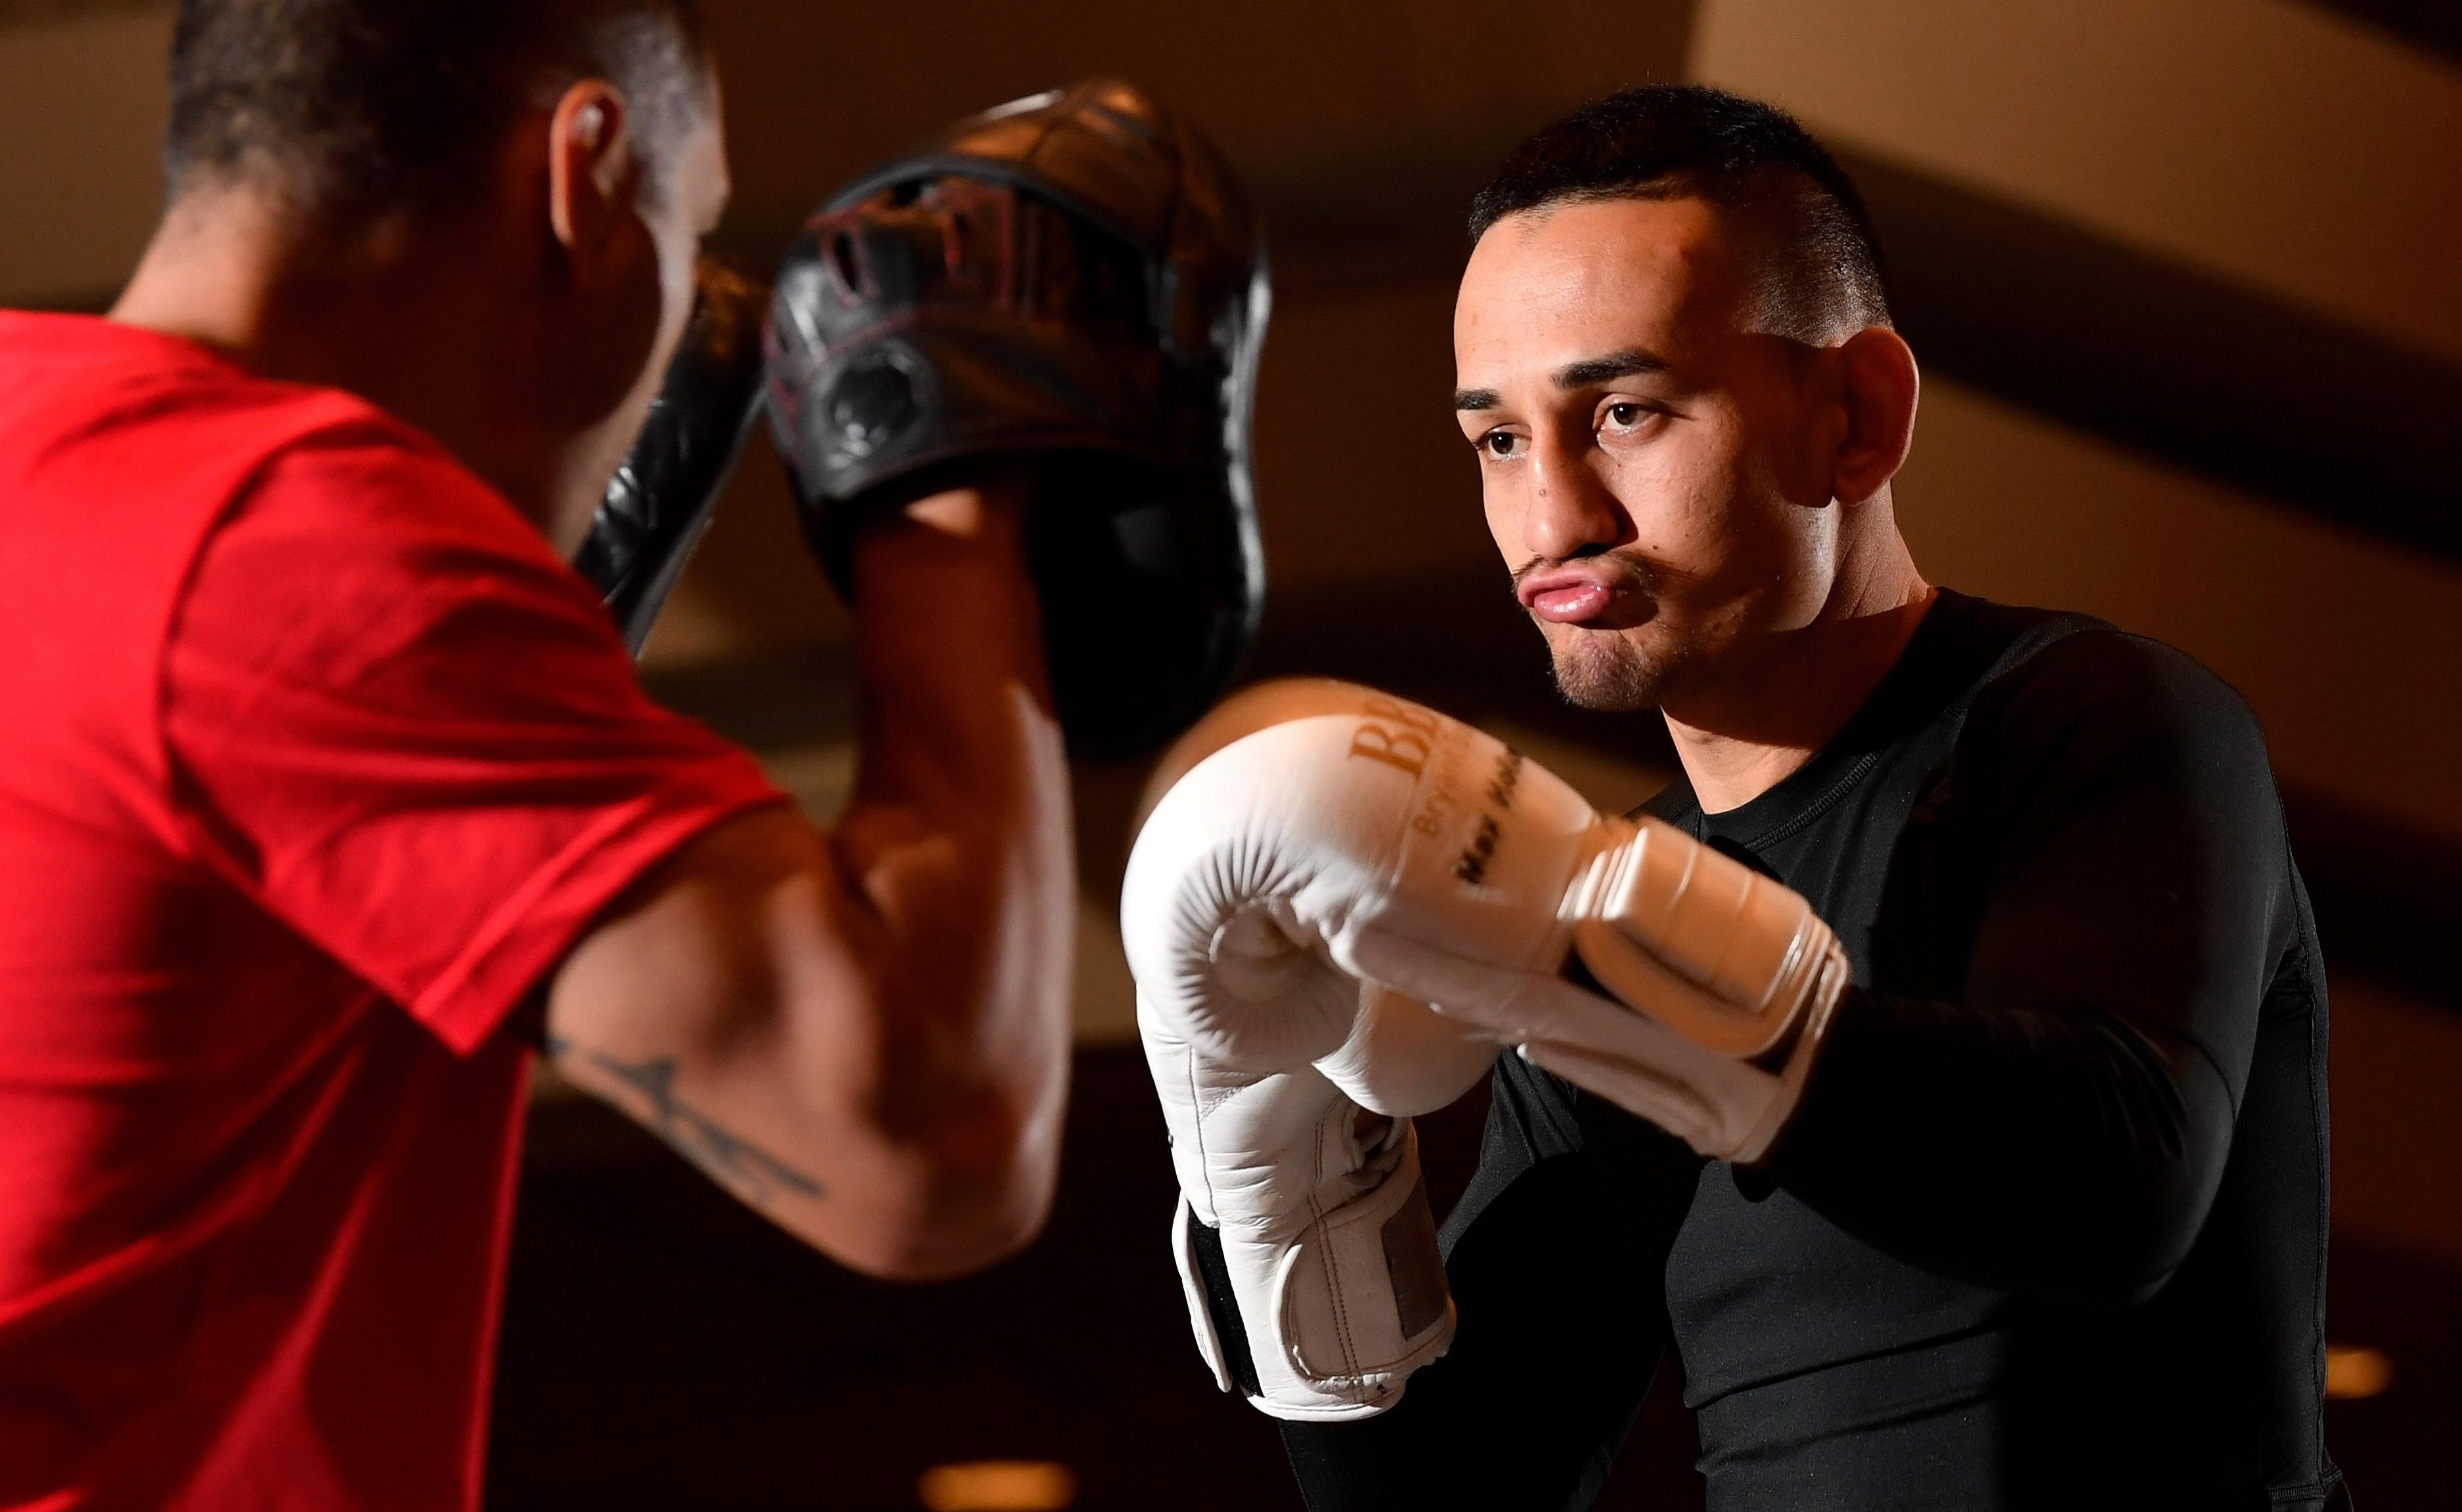 Max Holloway looked uncharacteristically slow at his media workout